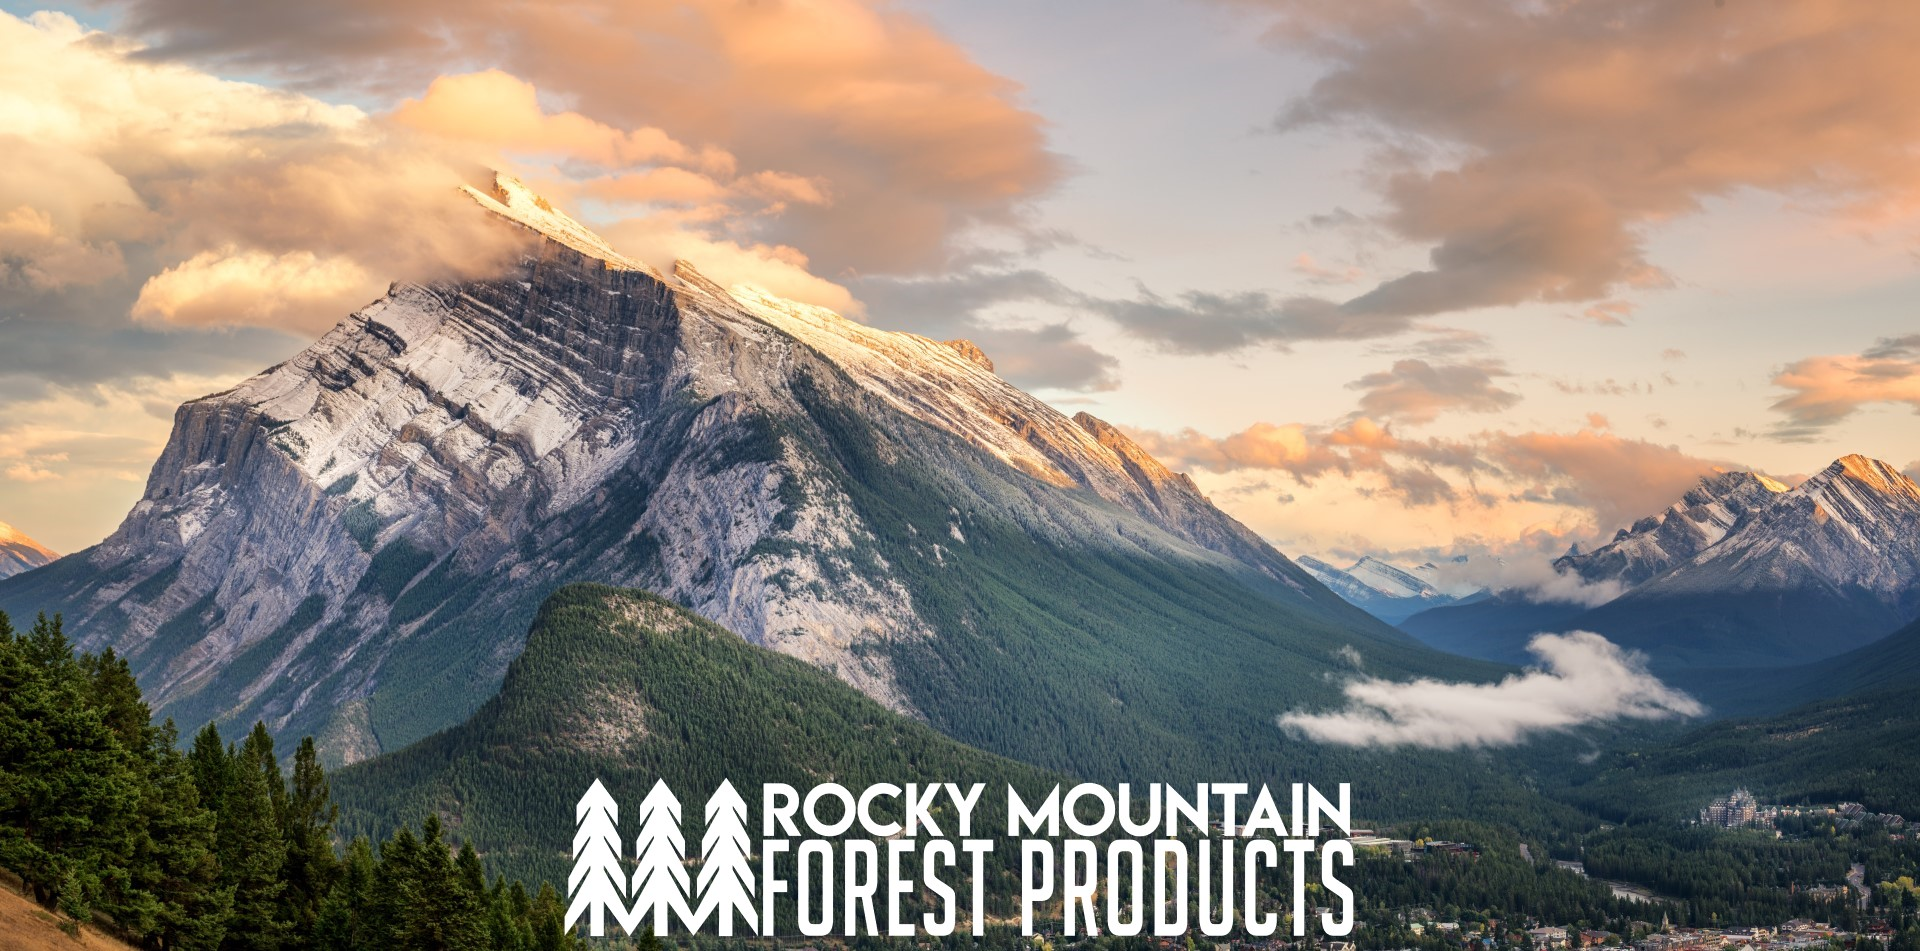 Rocky Mountain Forest Products Ceo Chosen For Denver